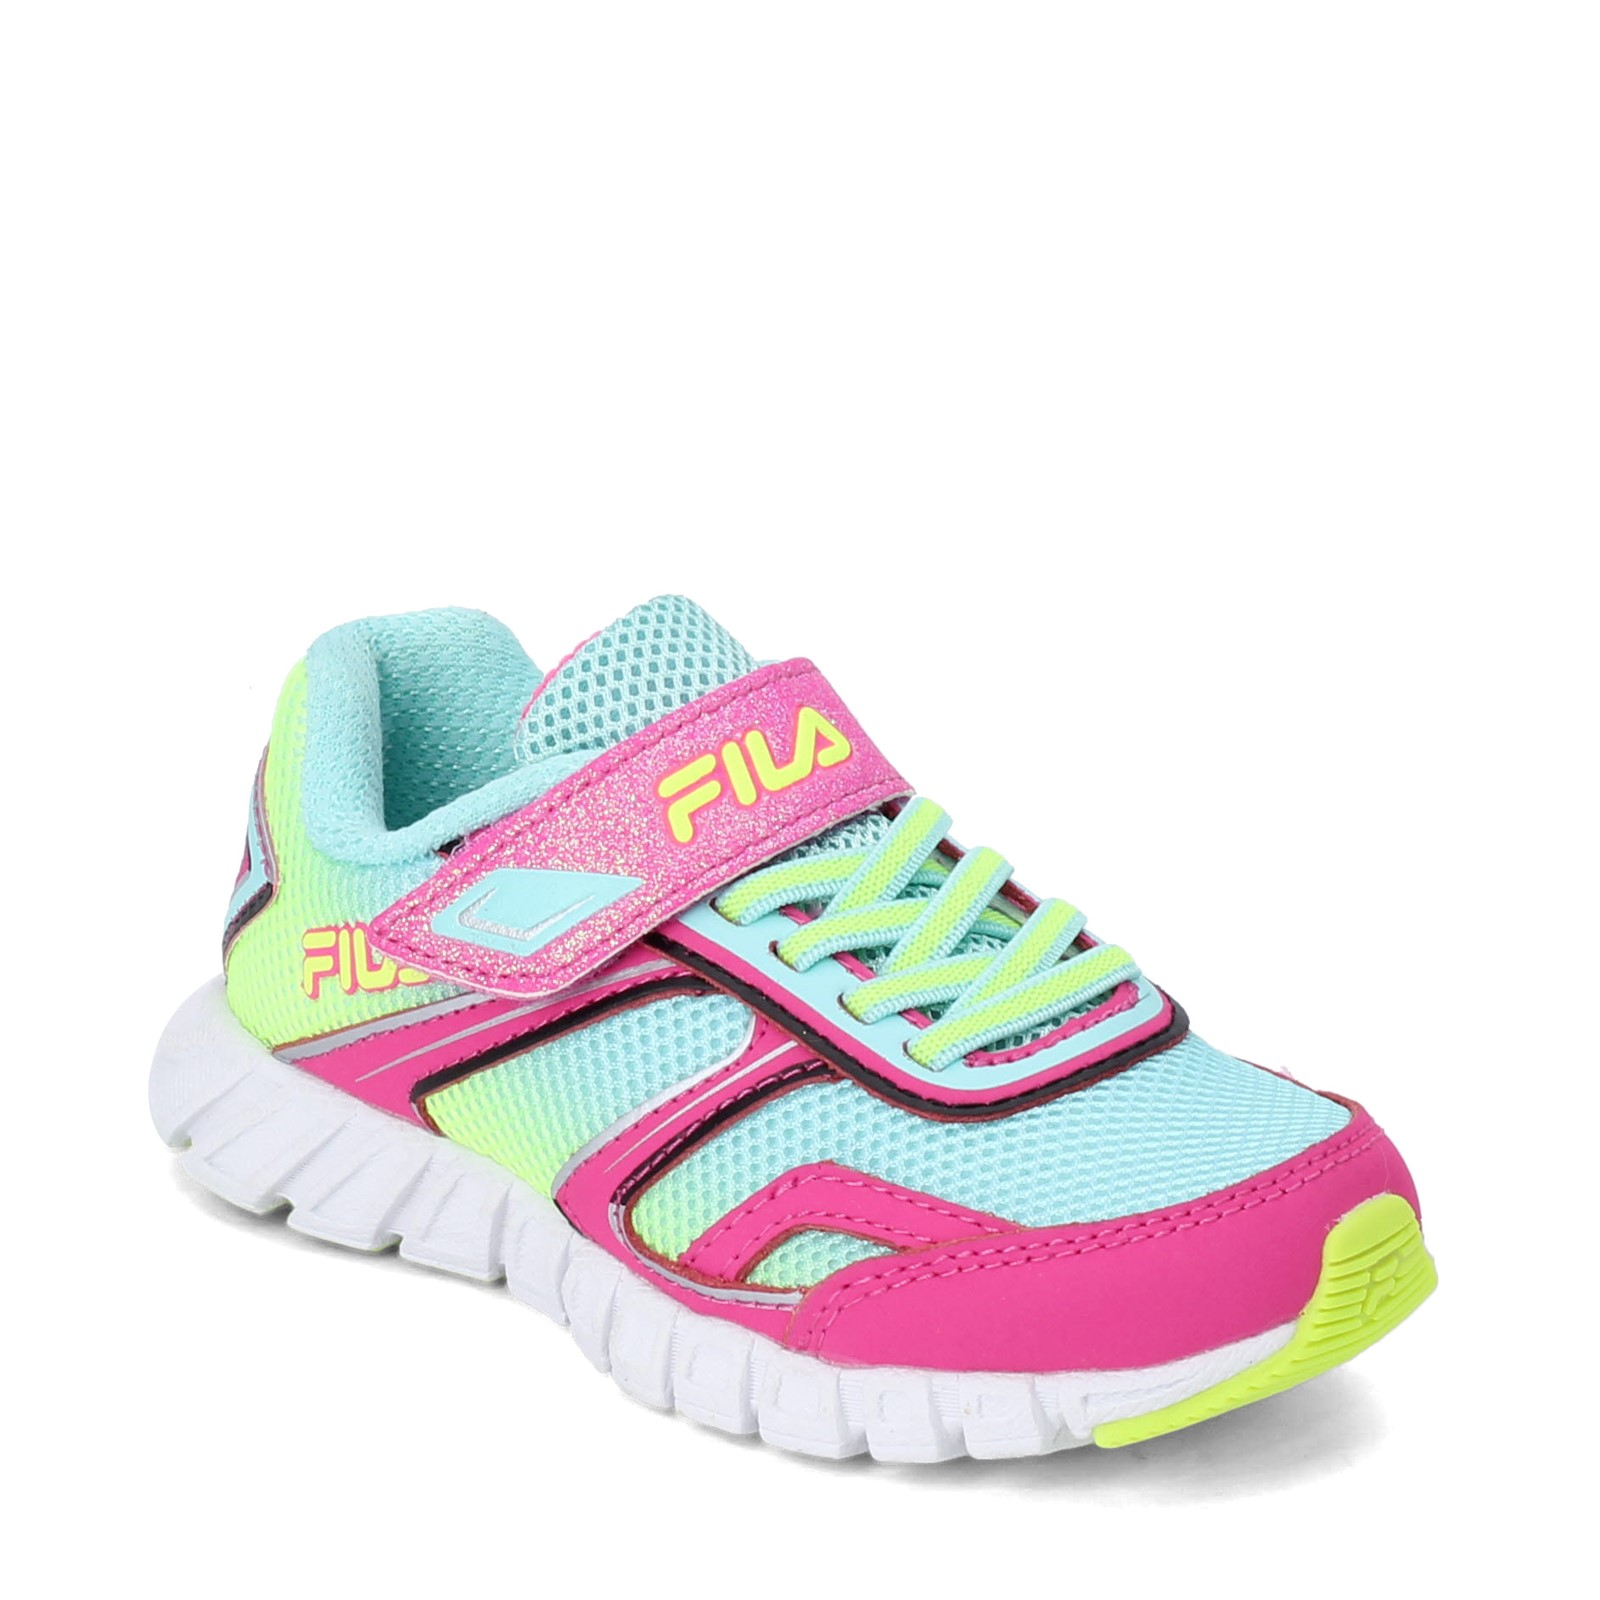 Girl's Fila, Crater 19 Sneaker - Little Kid